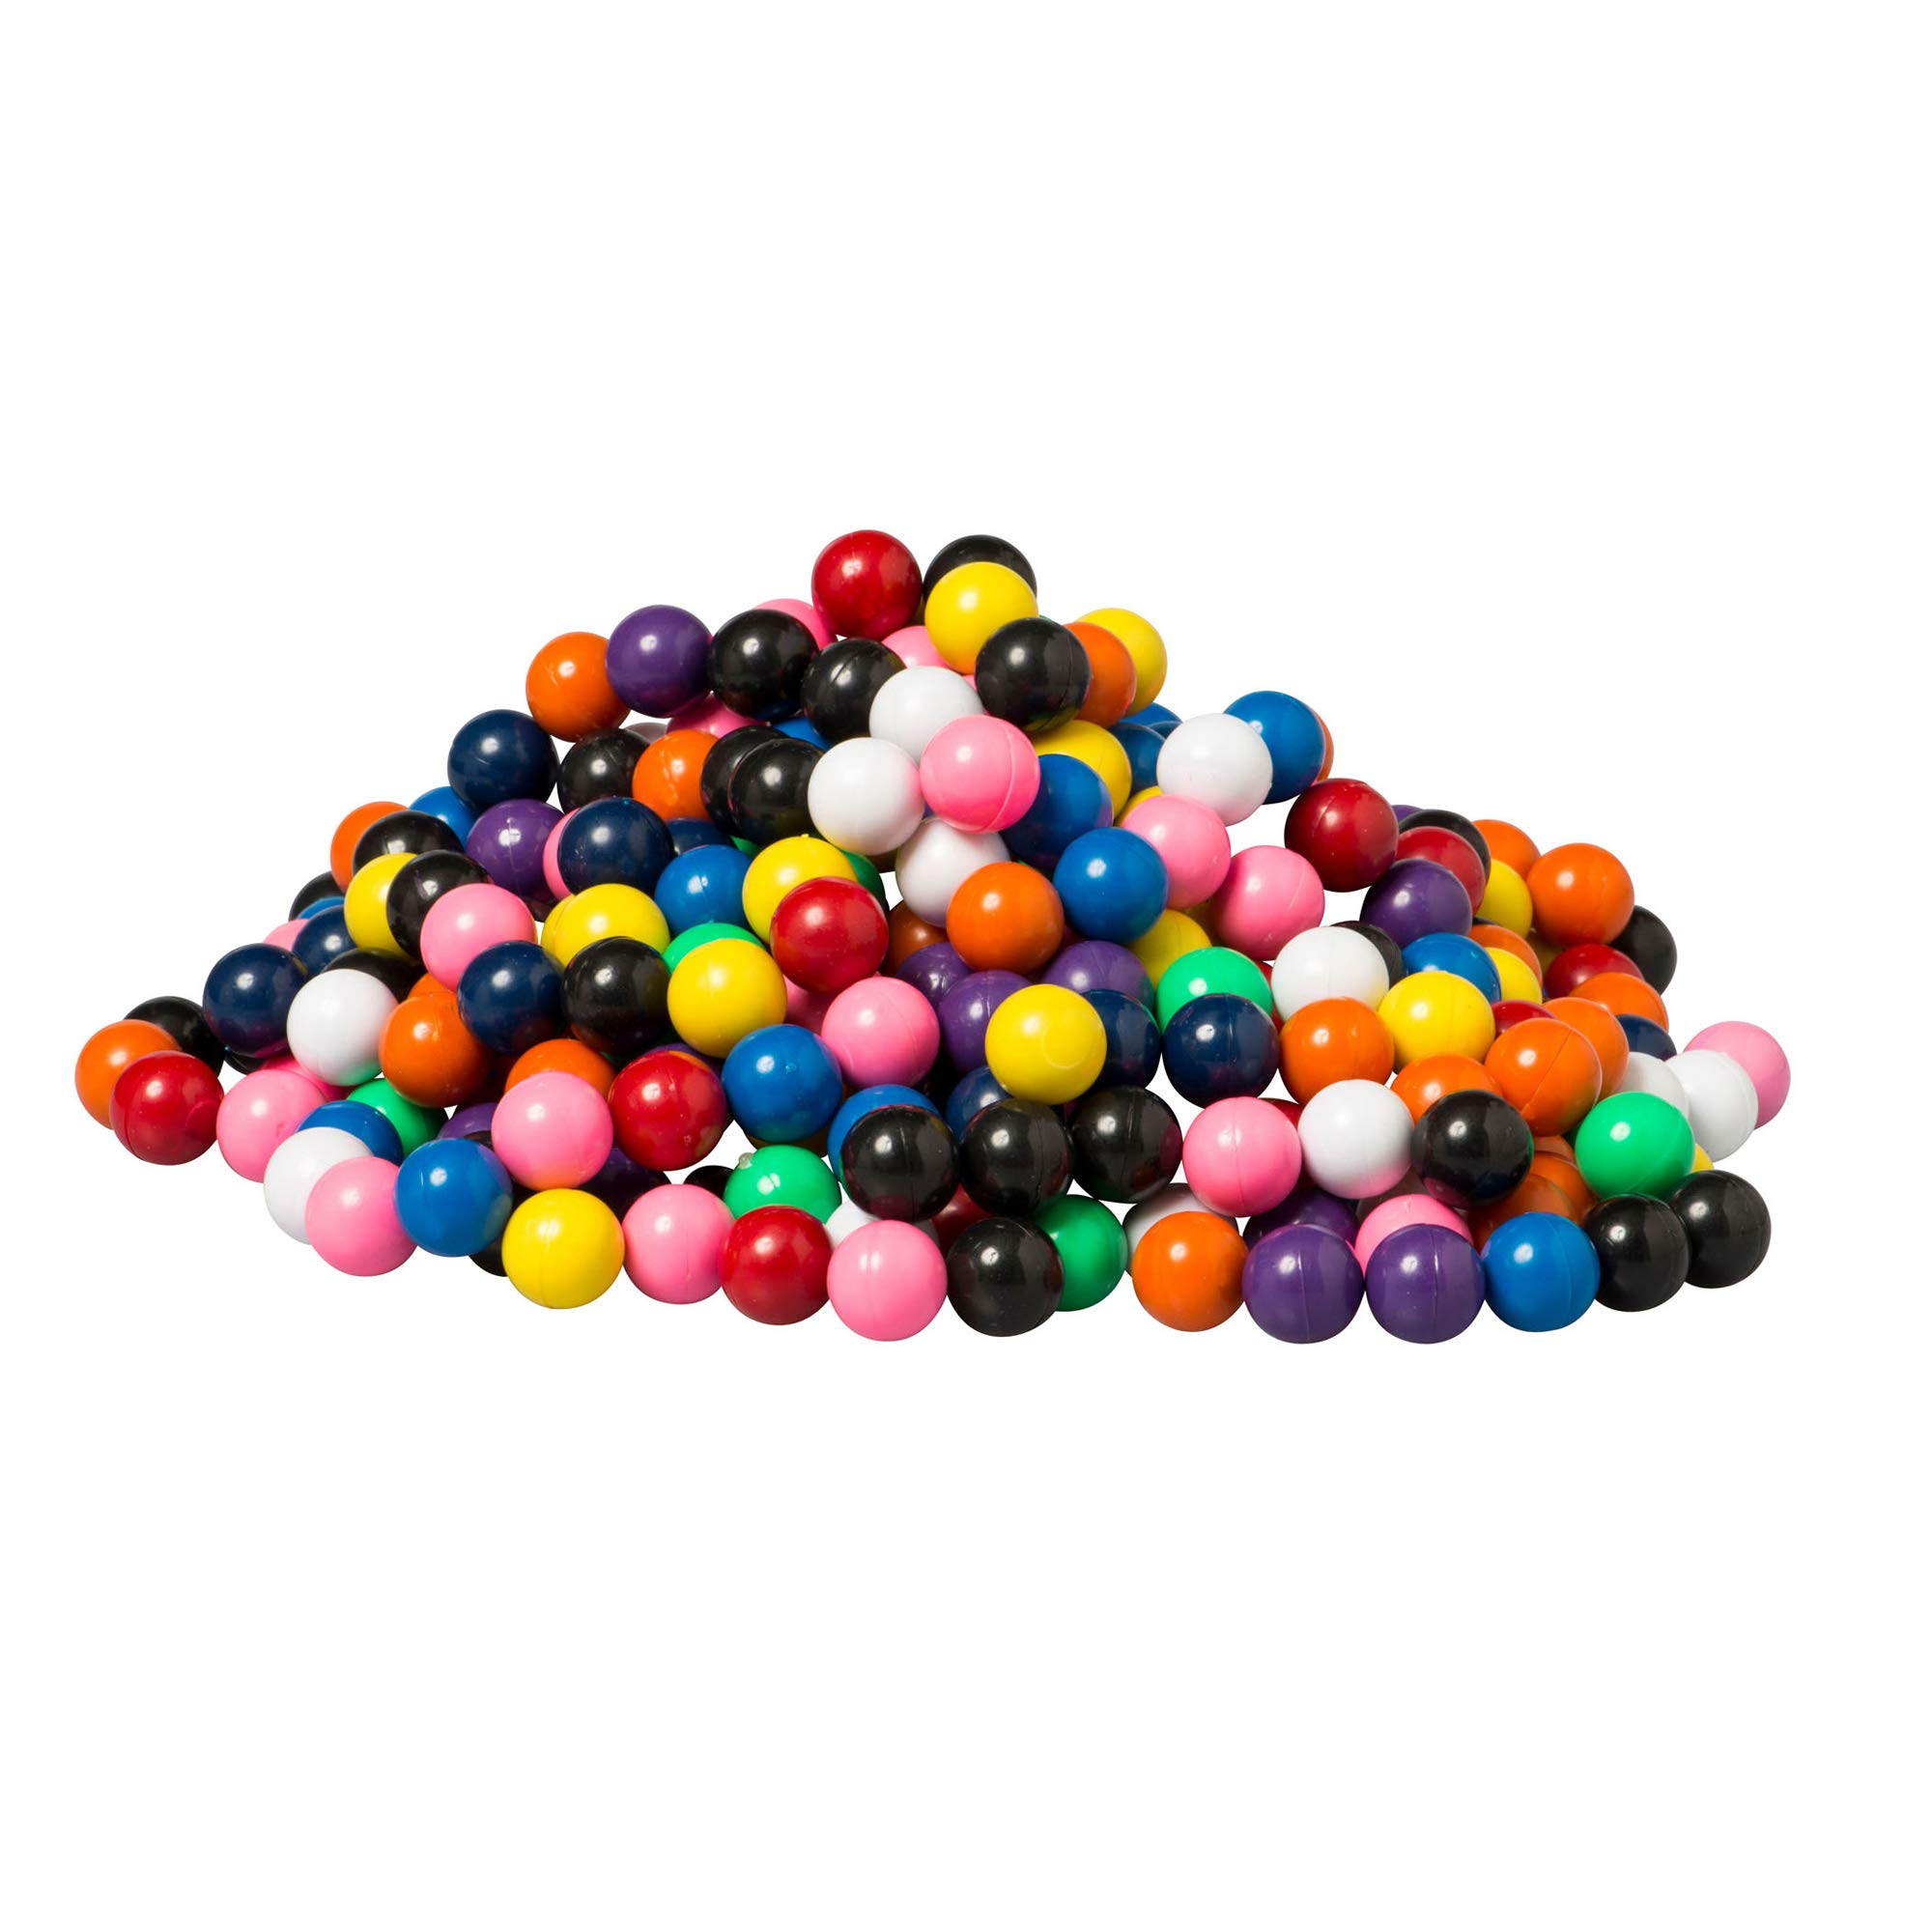 Dowling Magnets Solid-Colored Magnet Marbles (400 Count) by Dowling Magnets